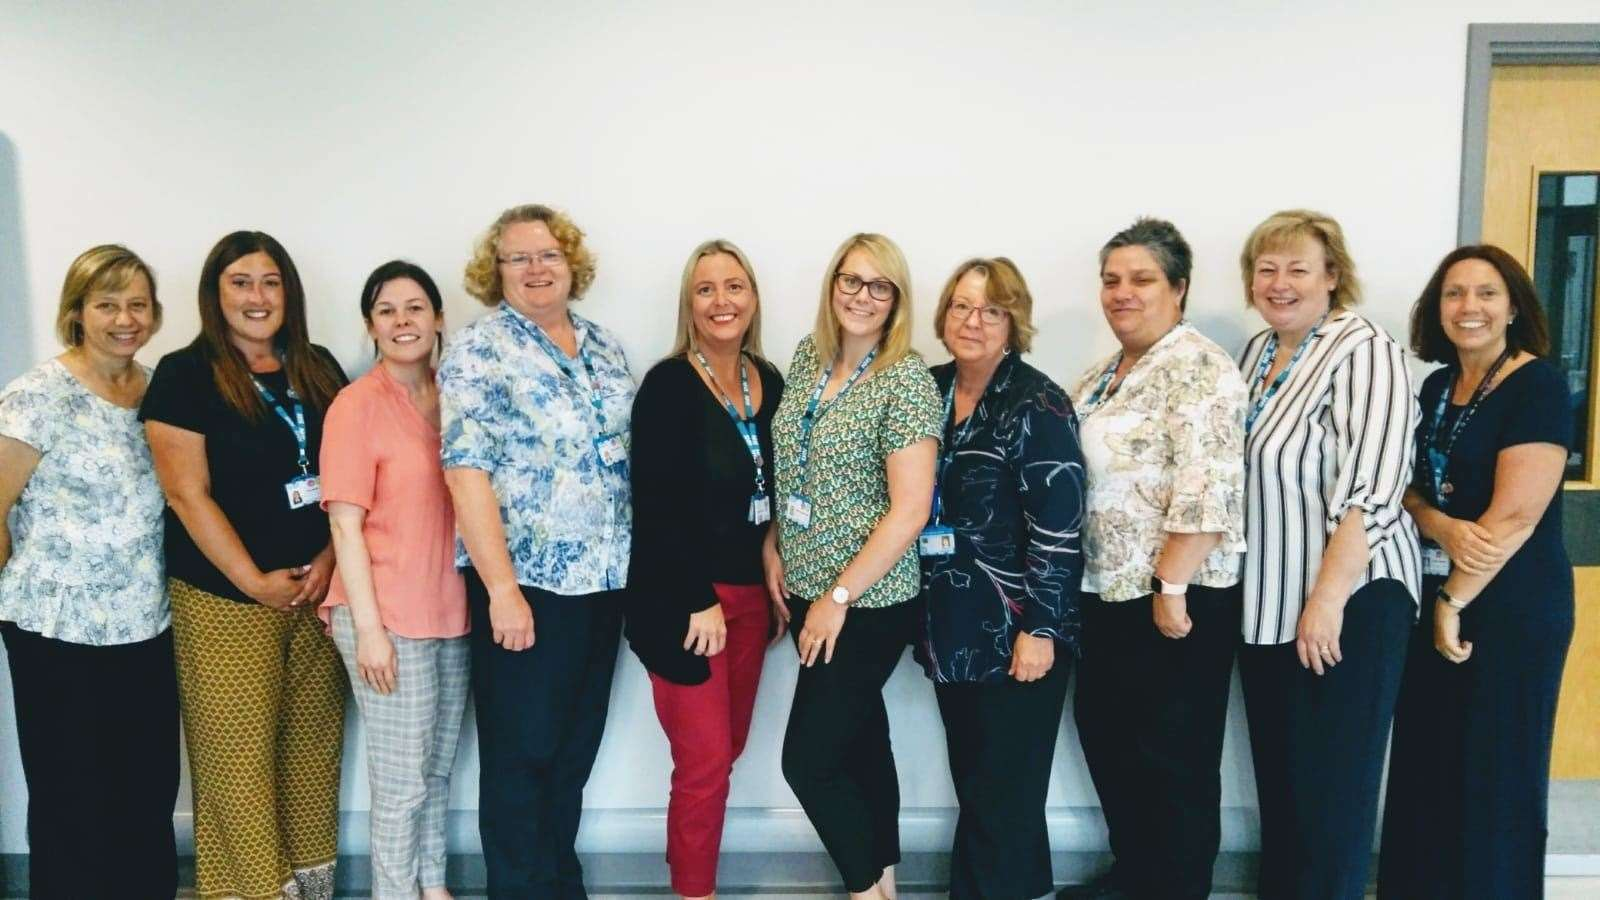 The shortlisted care coordination team who have been nominated for the HRH The Prince of Wales Integrated Approaches to Care Award. Pictured are (not in order): Ella Asher, Nicky Donley, Carly Fisher, Carolyn Griffin, Hilda Healy, Denise Holden, Rachel Ingam-Brown, Louise Johnson , Jessica Merritt and Louise Willson